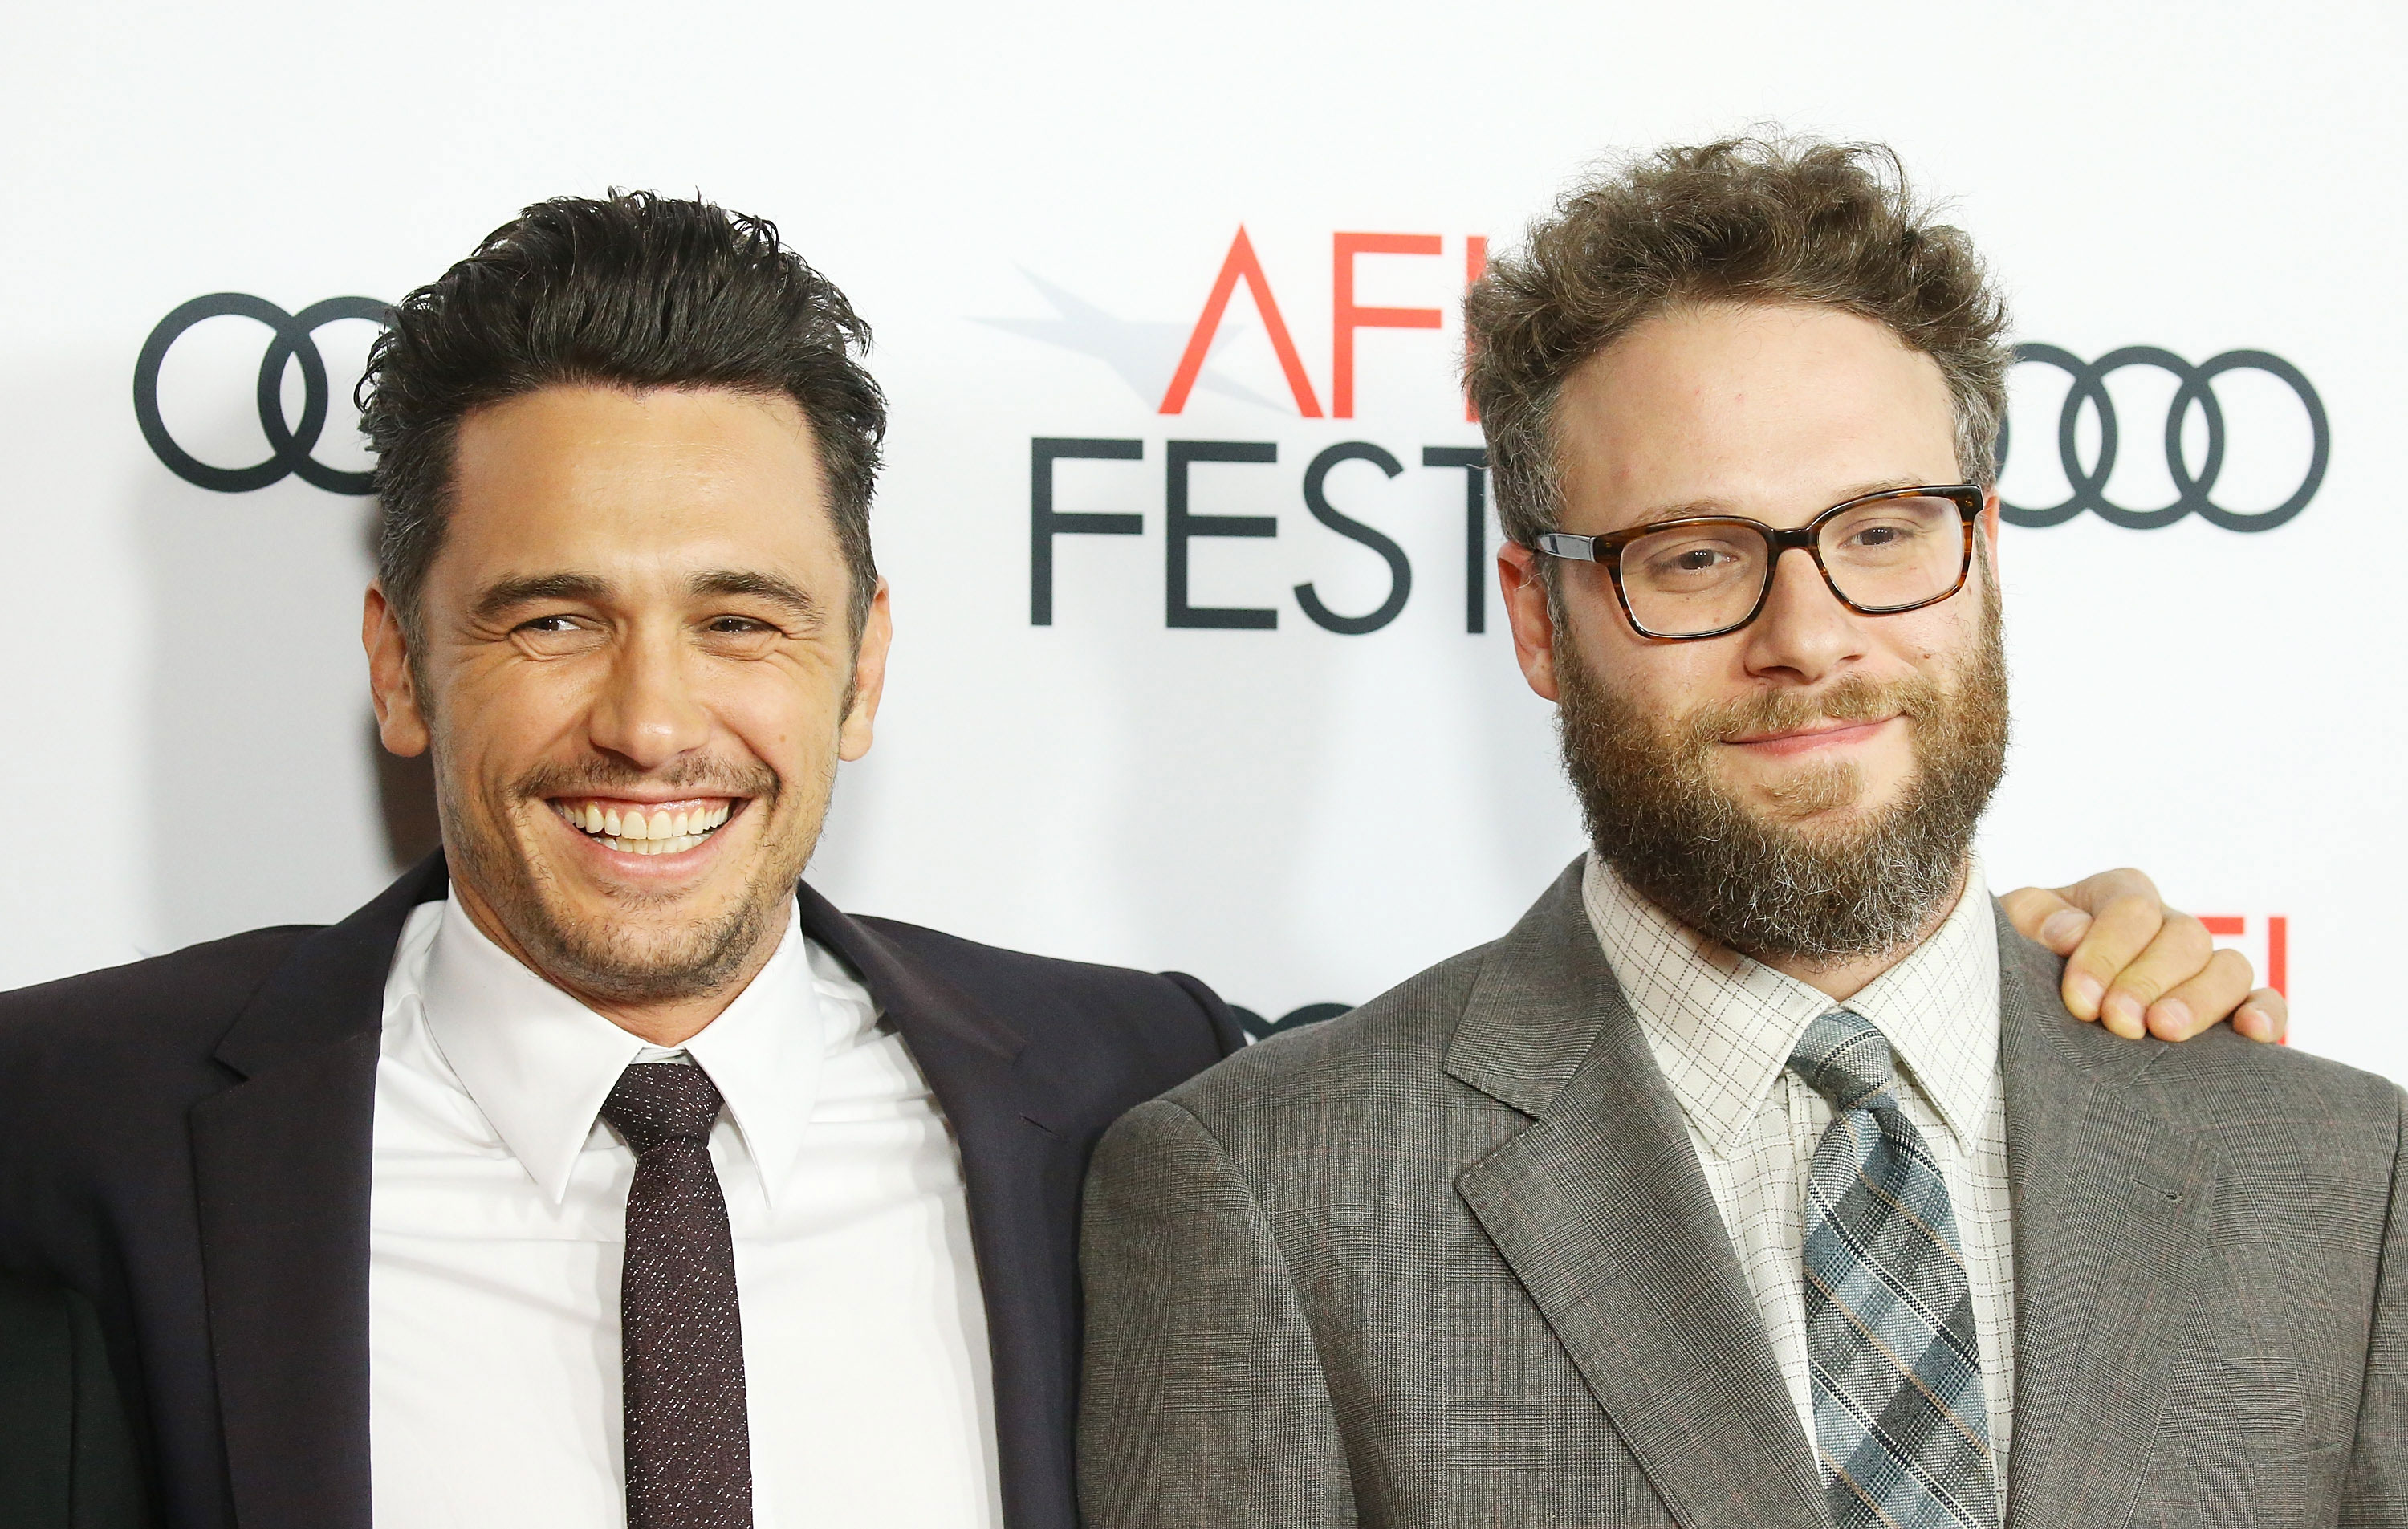 Seth Rogen says he has no plans to work with James Franco again